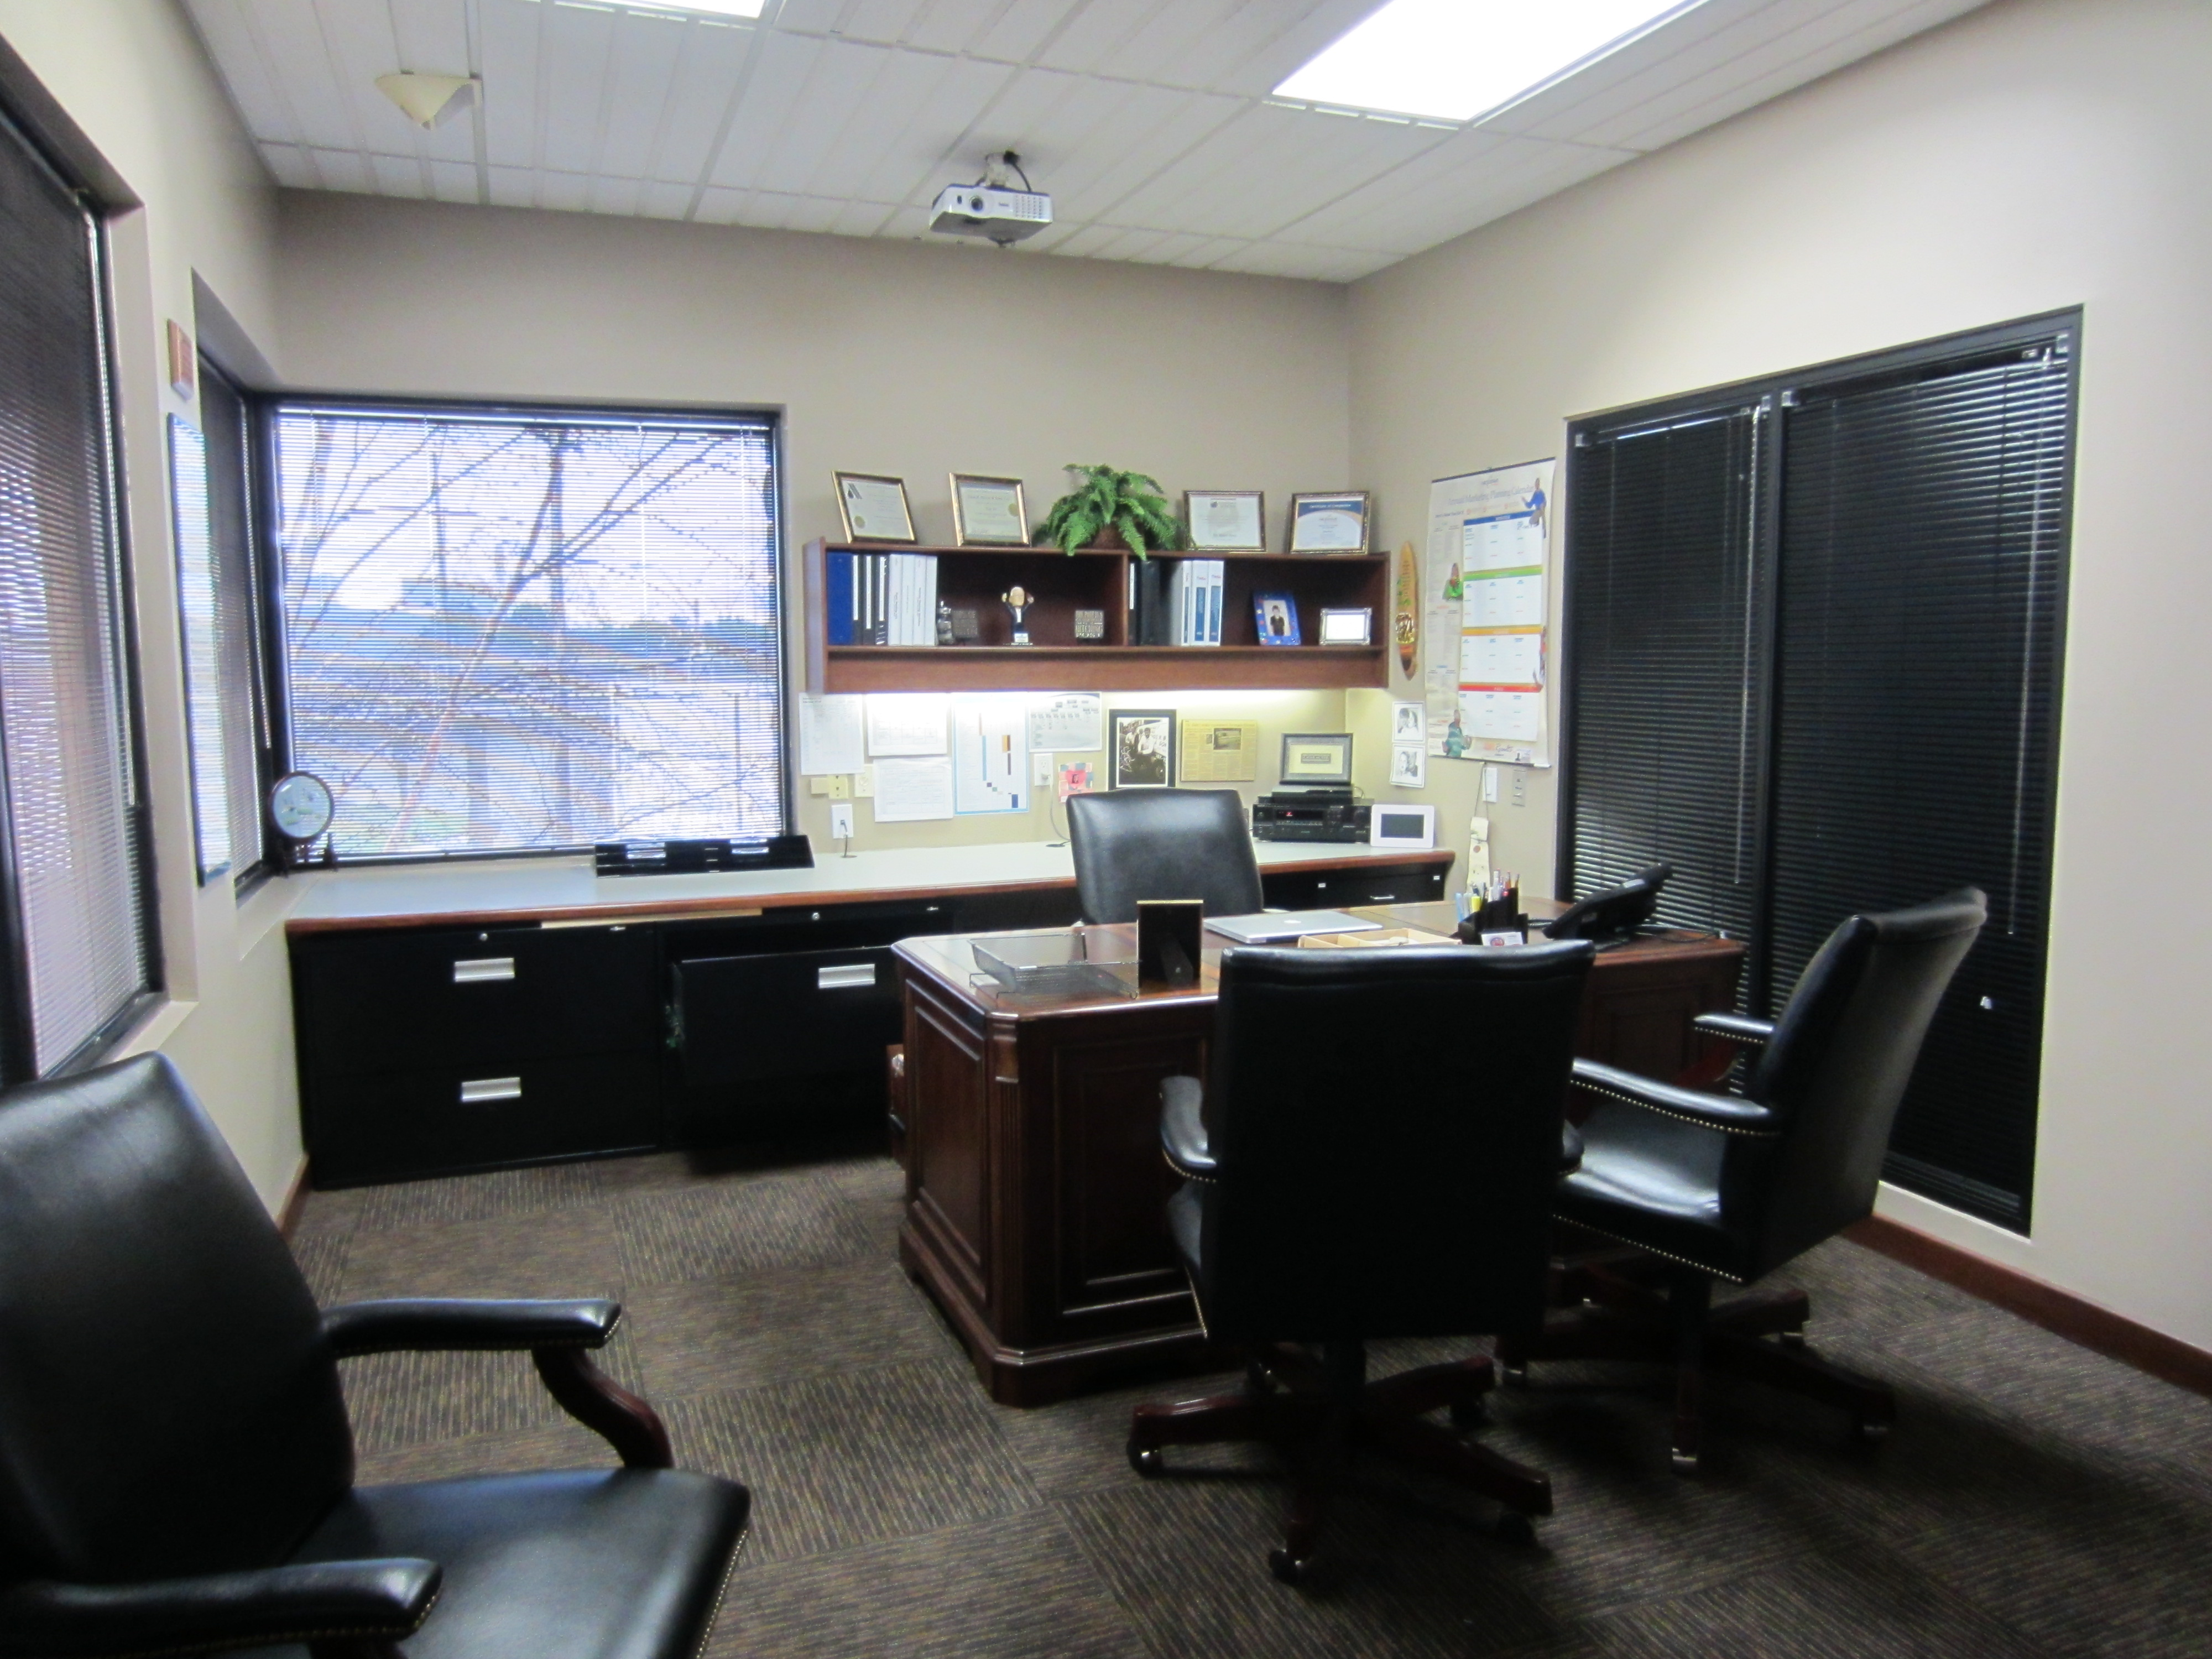 Business Office Small Business Office Dream Space S O S